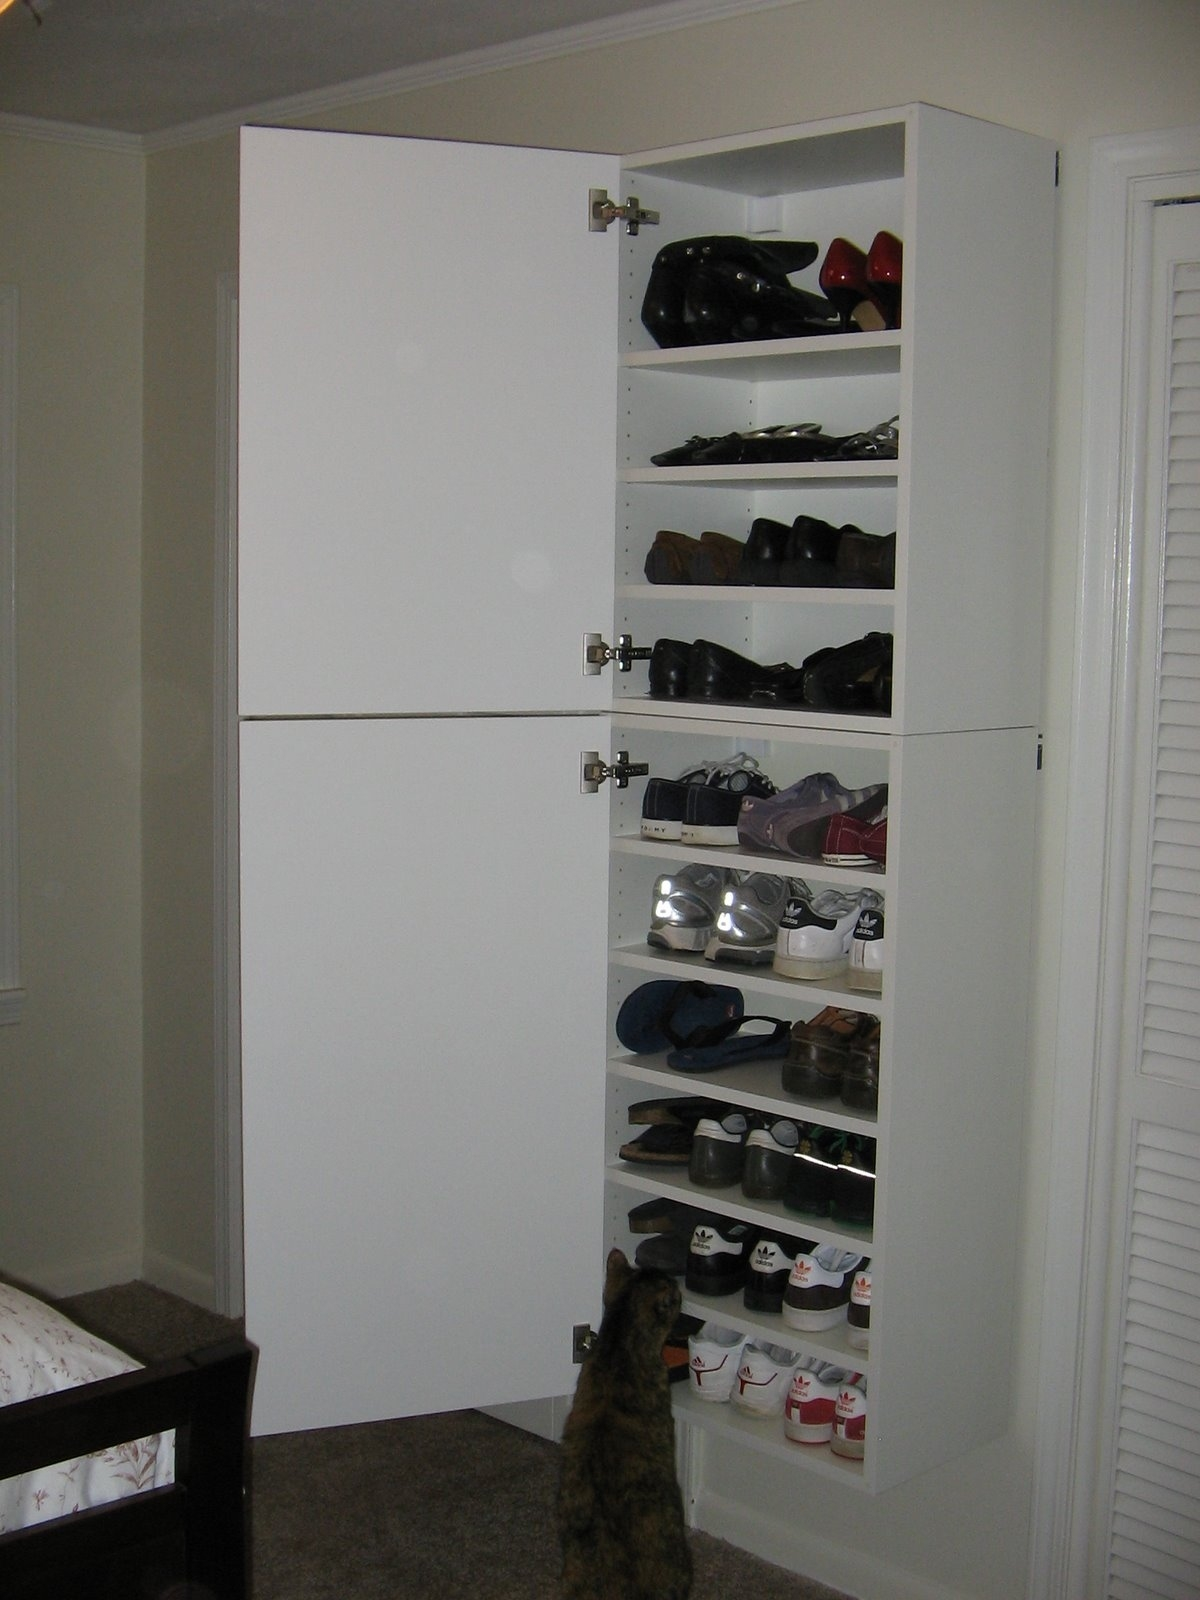 Ikea Bookshelf As Shoe Rack